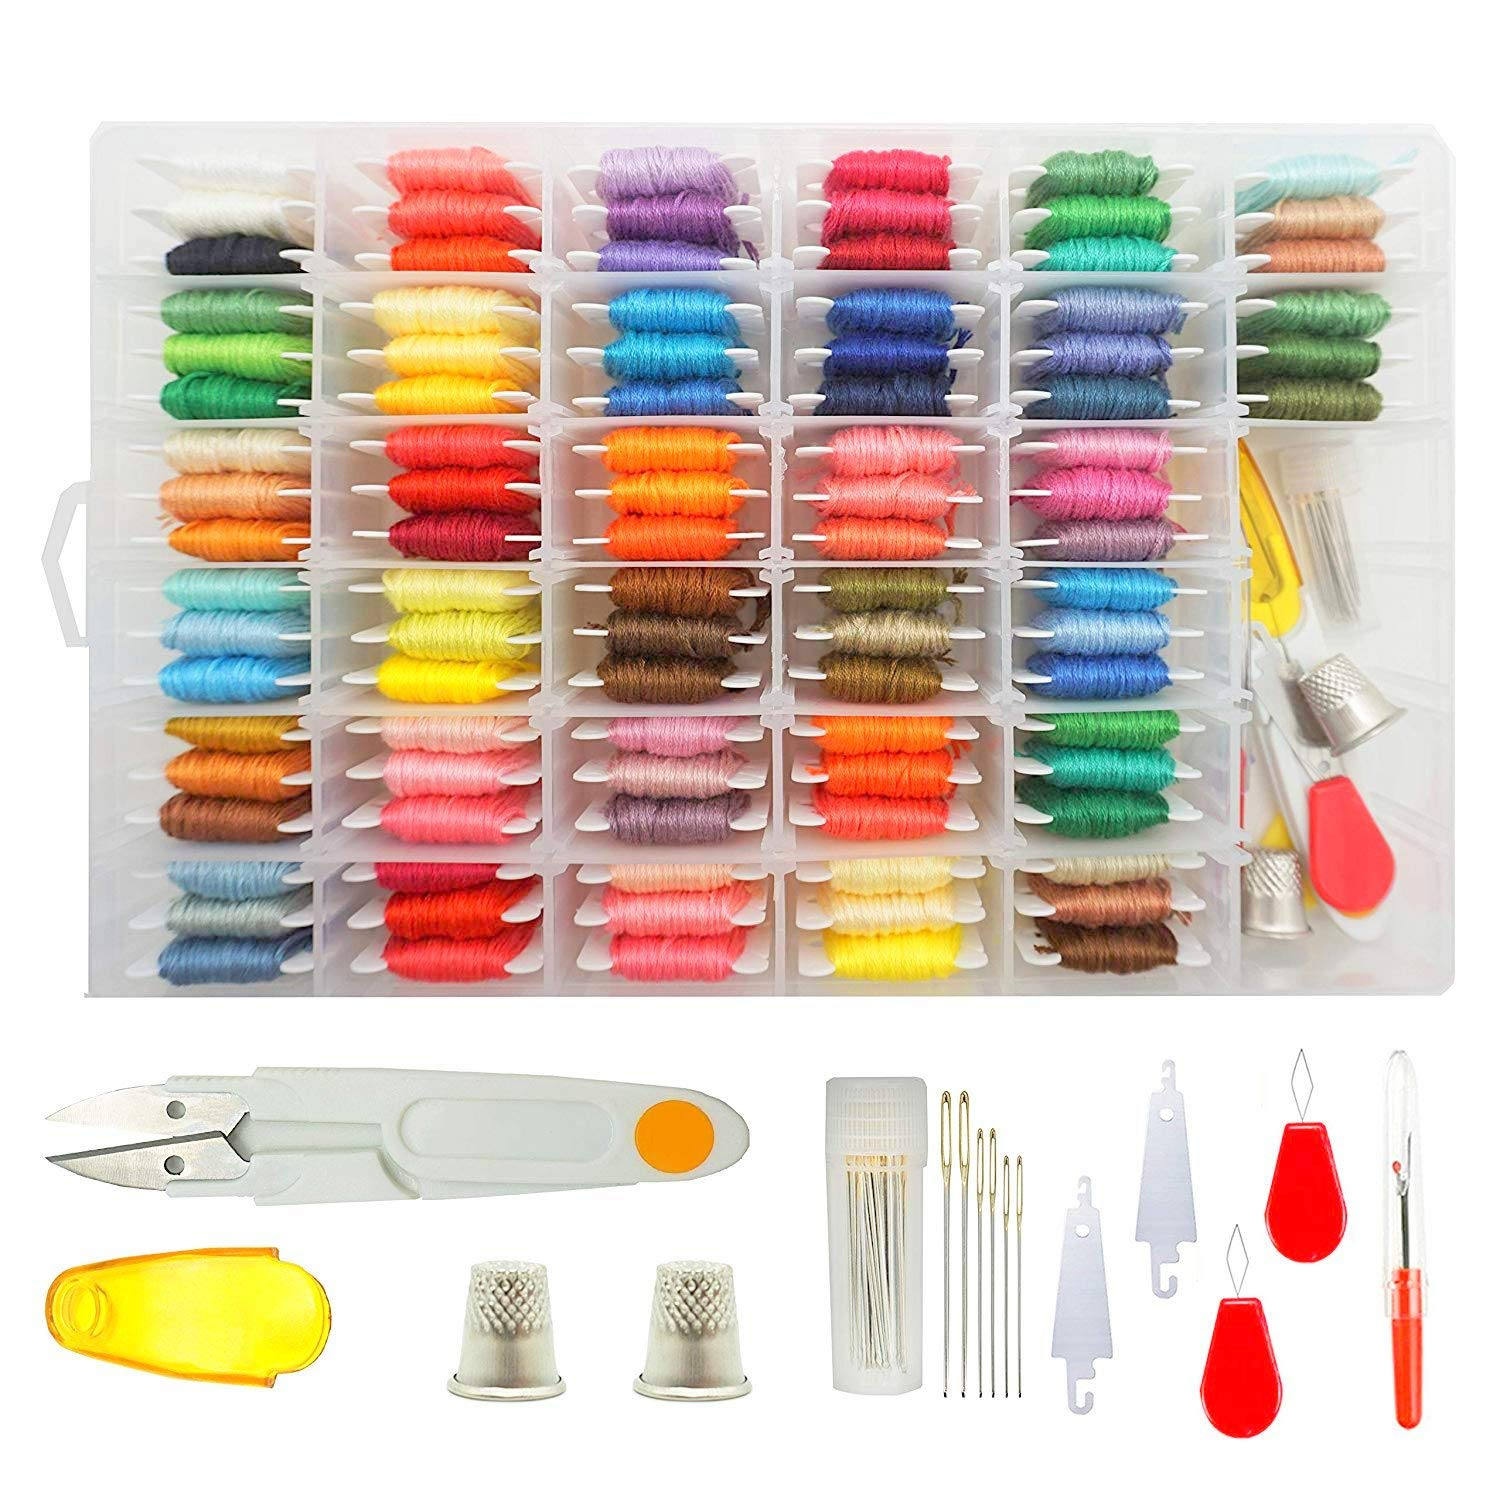 Embroidery Floss Cross Stitch Threads - Darley 96 Colors Friendship Bracelet String with Organizer Storage Box, Floss Bobbins and 38 Pcs Cross Stitch Kits Darley Arts & Crafts